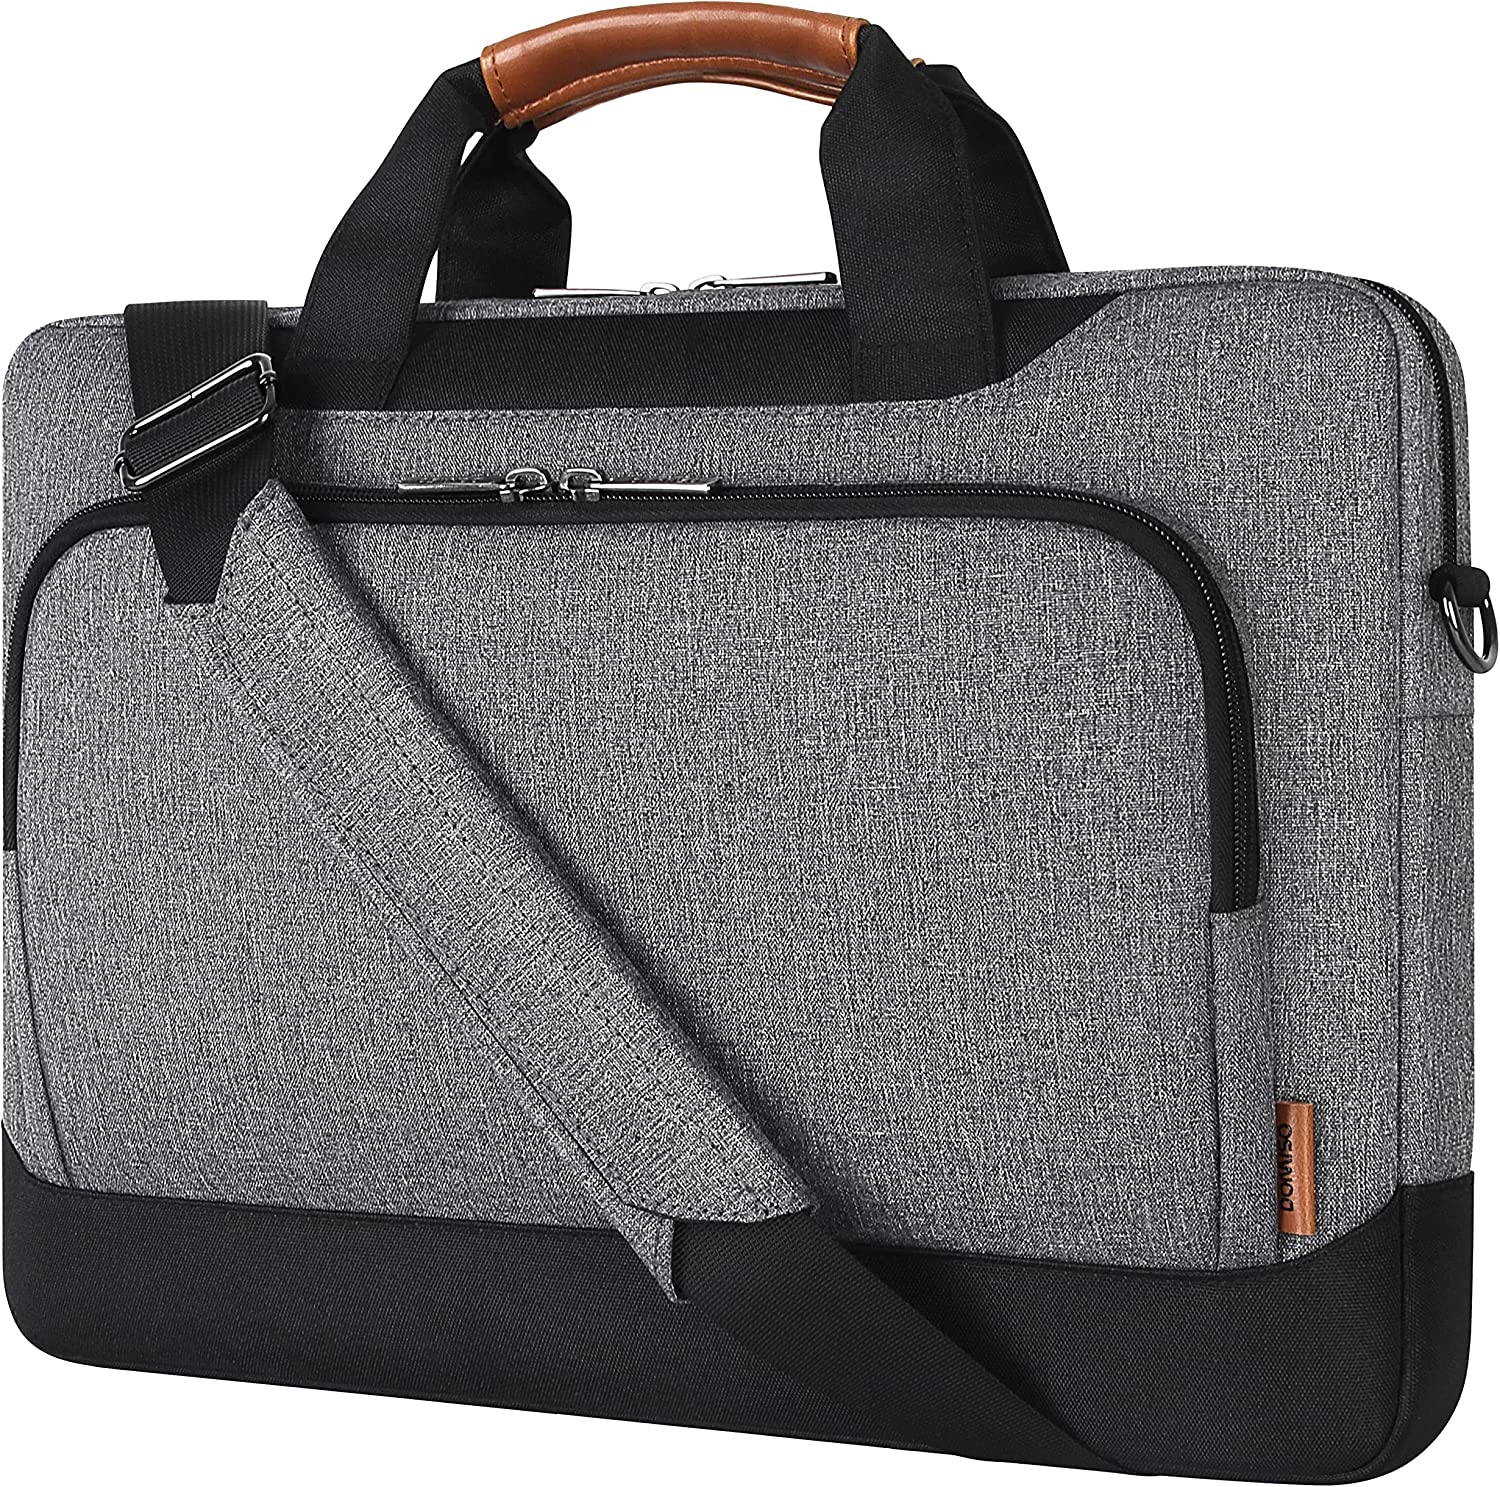 DOMISO 15 - 15.6 Inch Laptop Shoulder Bag Sleeve Case with Strap Compatible with Lenovo 15.6